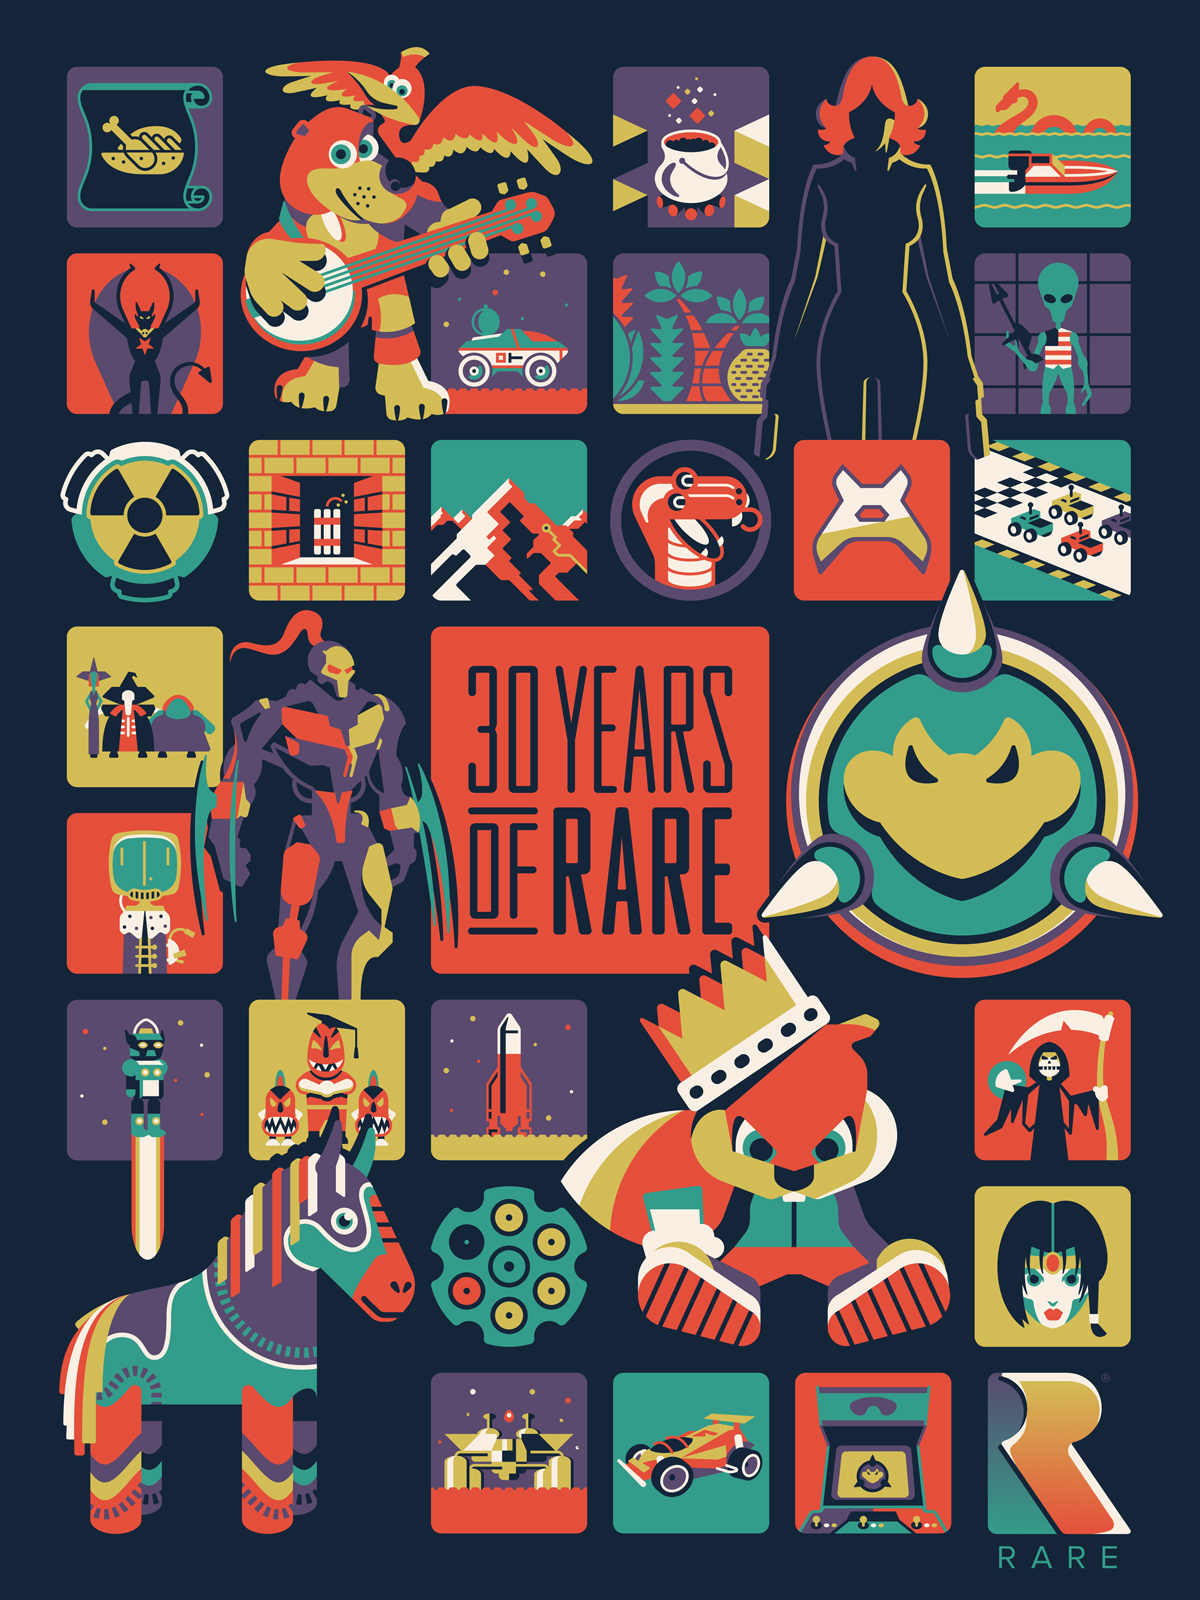 Xbox '30 Years of Rare' Poster by DKNG